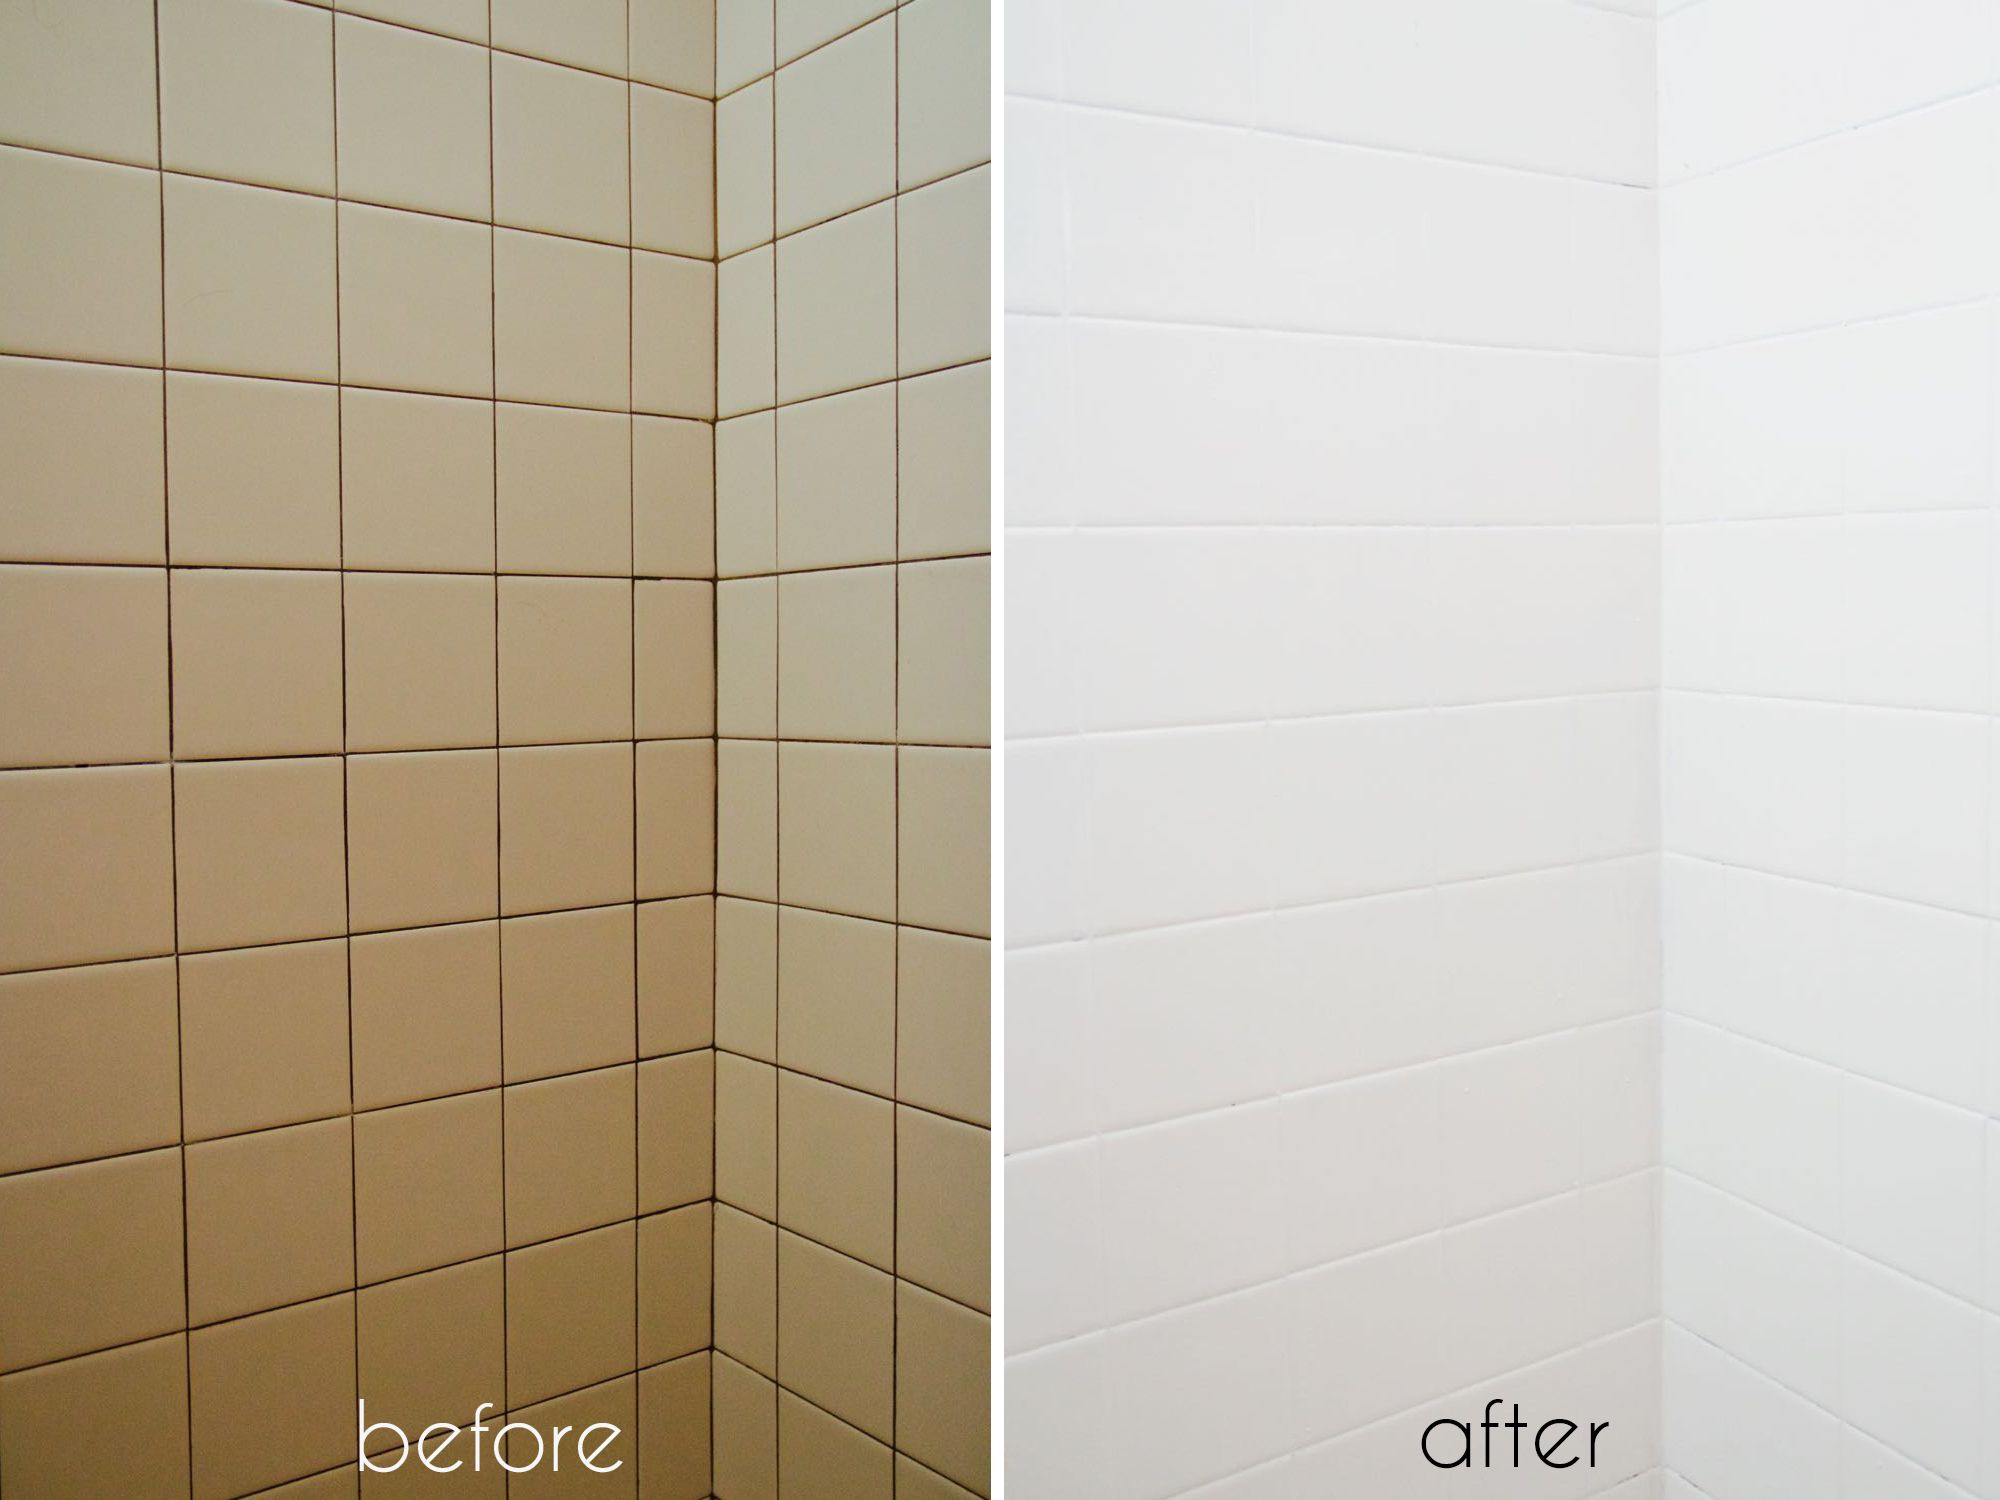 A Bathroom Tile Makeover...With Paint | Pinterest | Epoxy, Bathroom ...